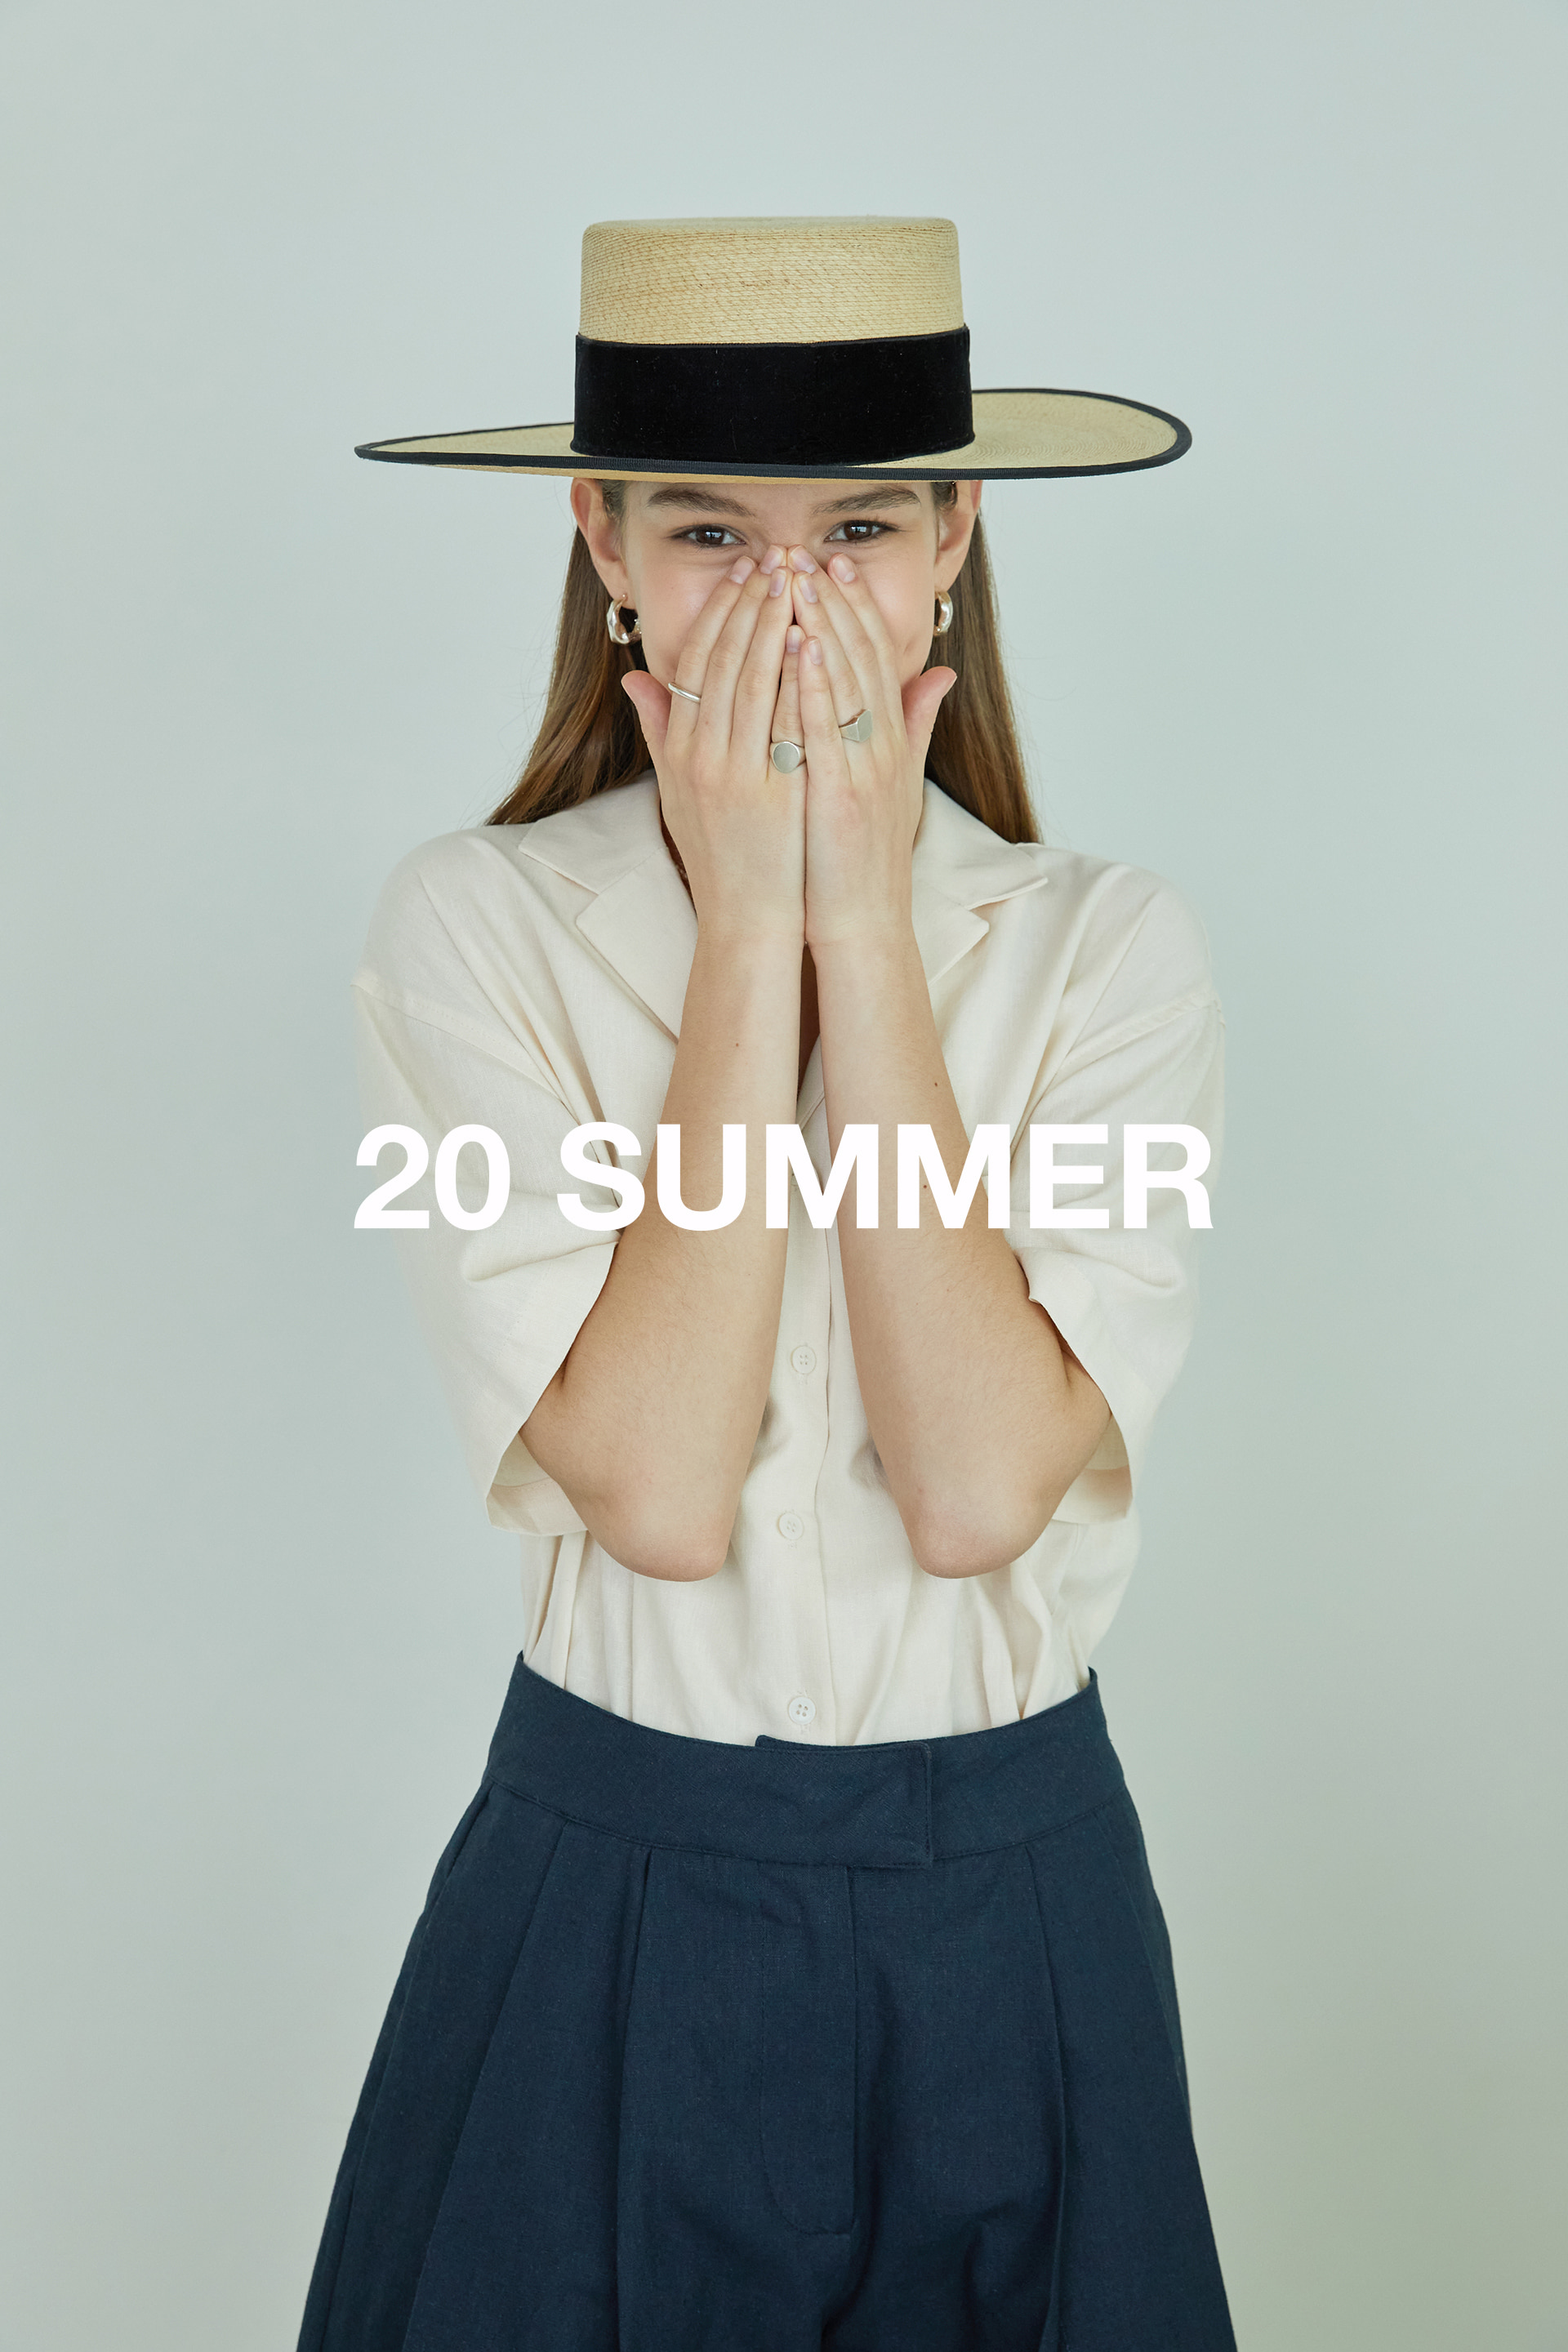 20SUMMER COLLECTION